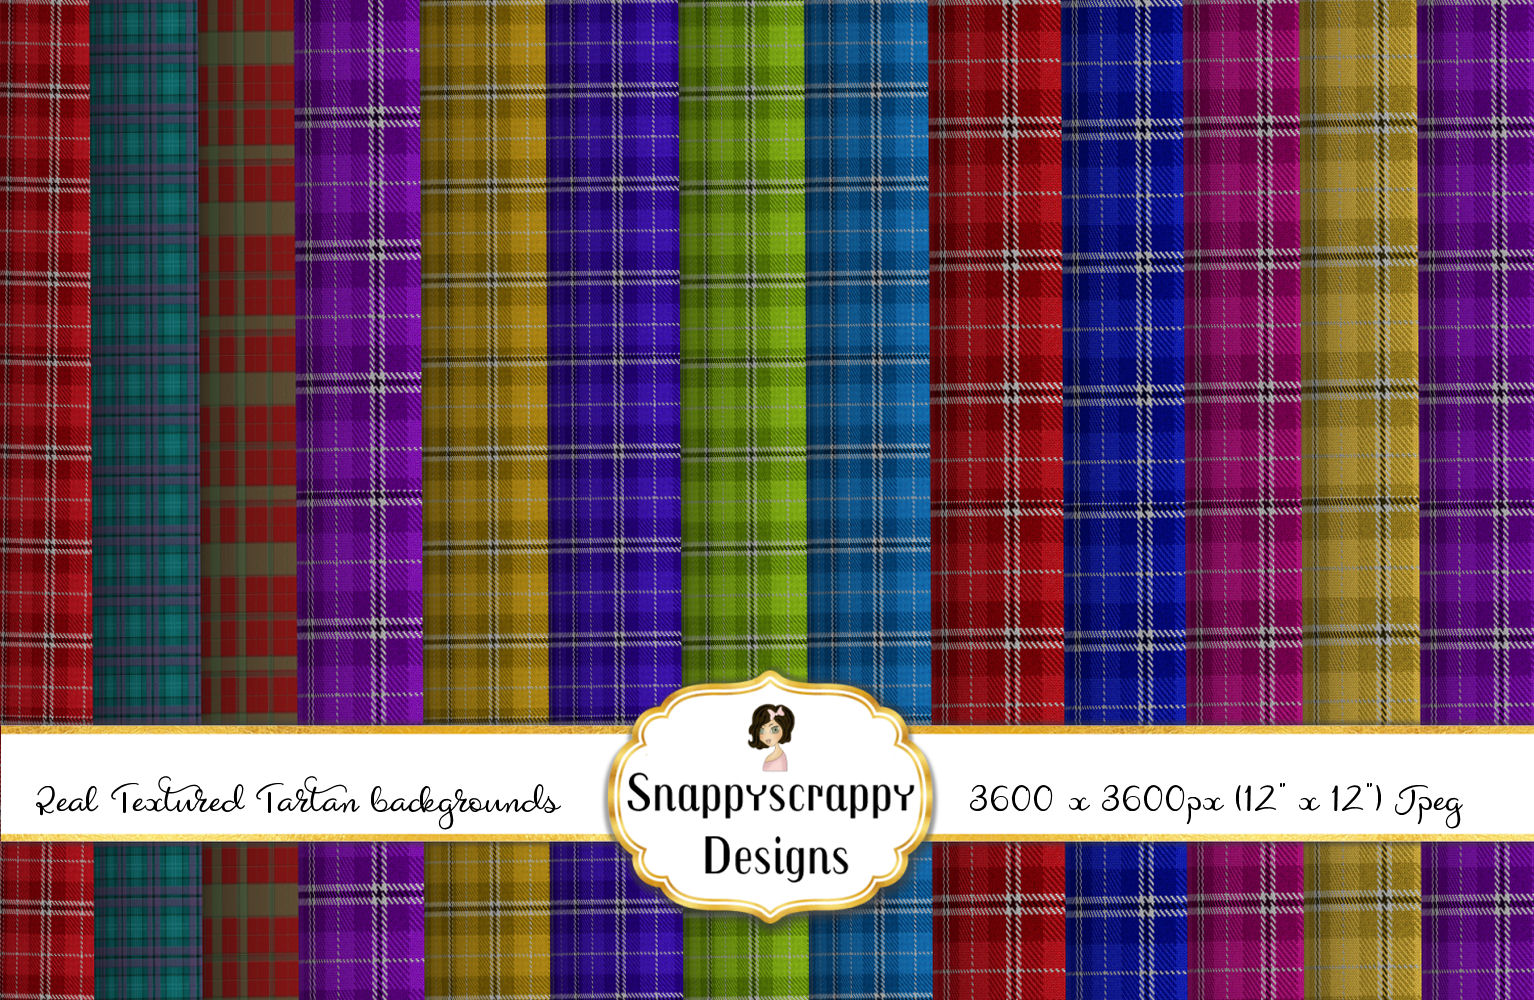 Textured Tartan Background Papers example image 3